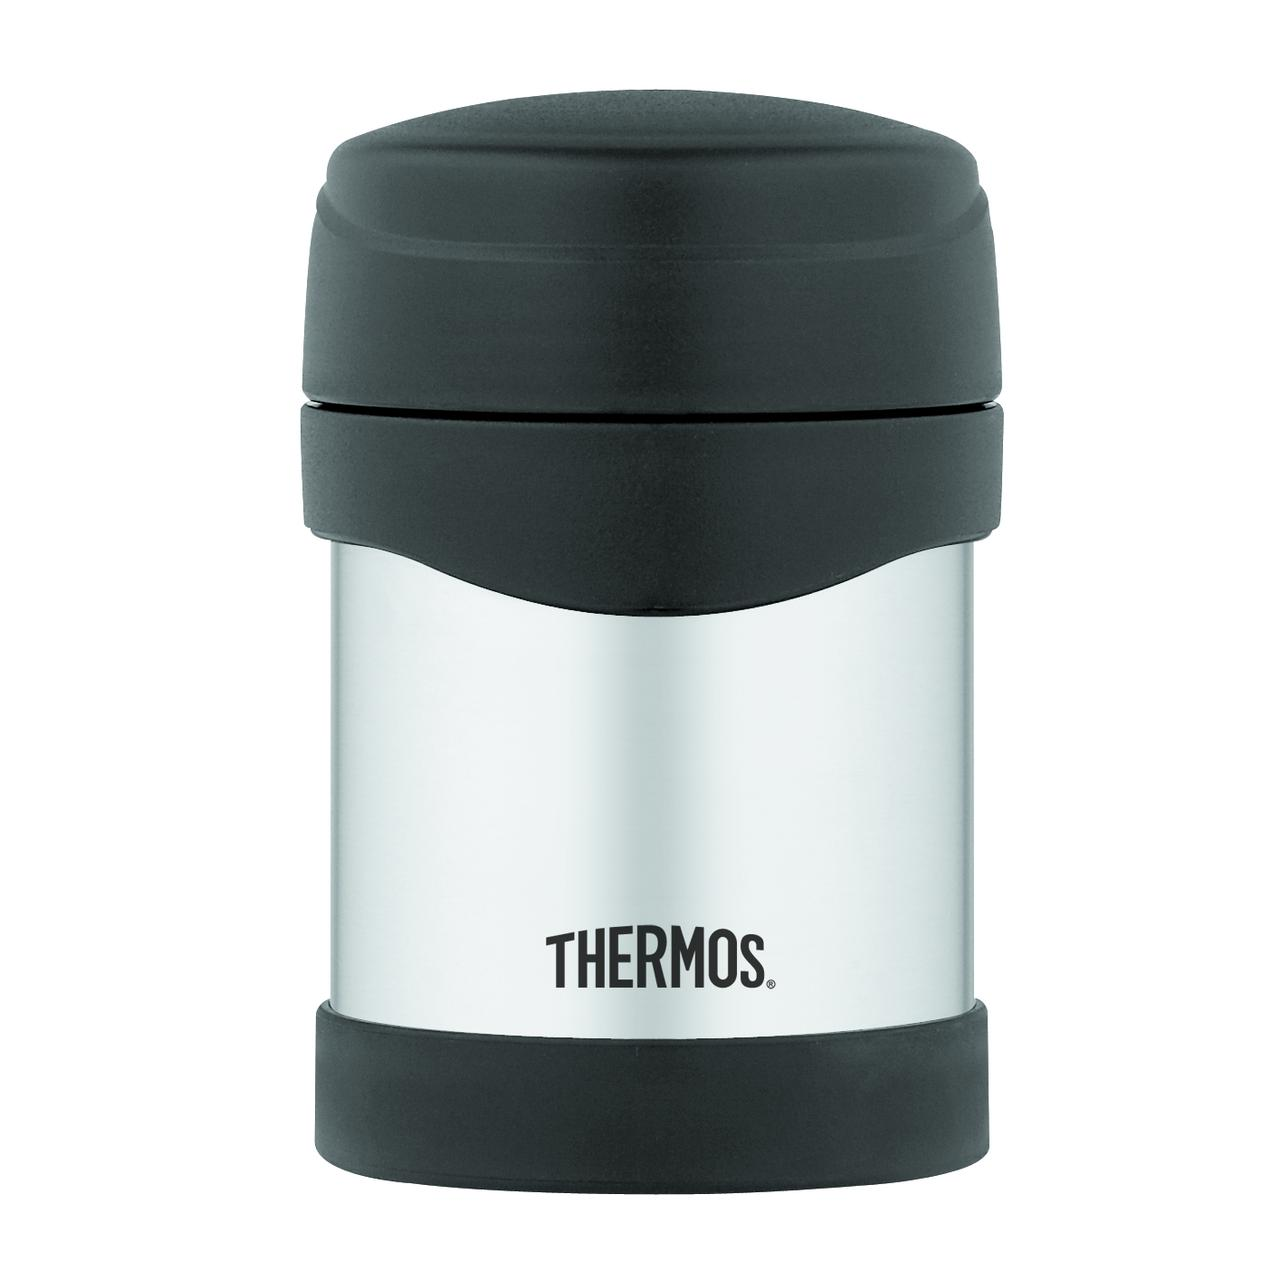 Thermos 10 oz Stainless Steel Food Jar